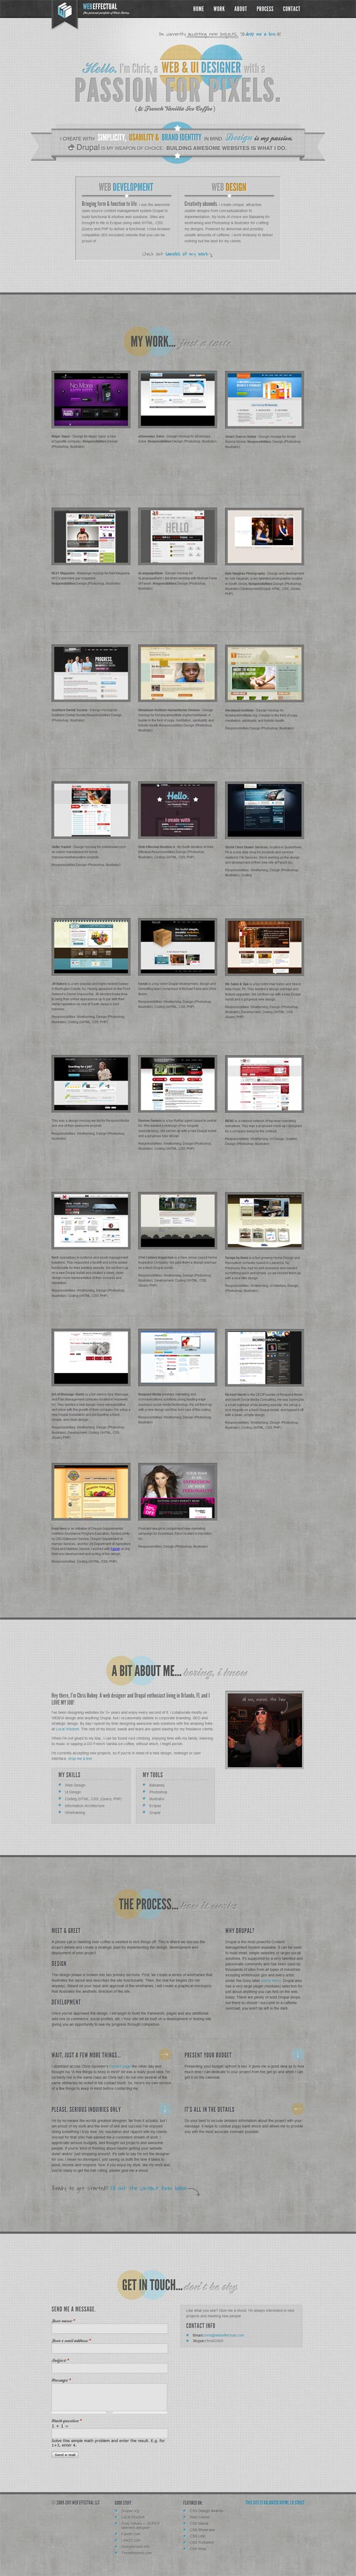 Web Effectual | Web Design